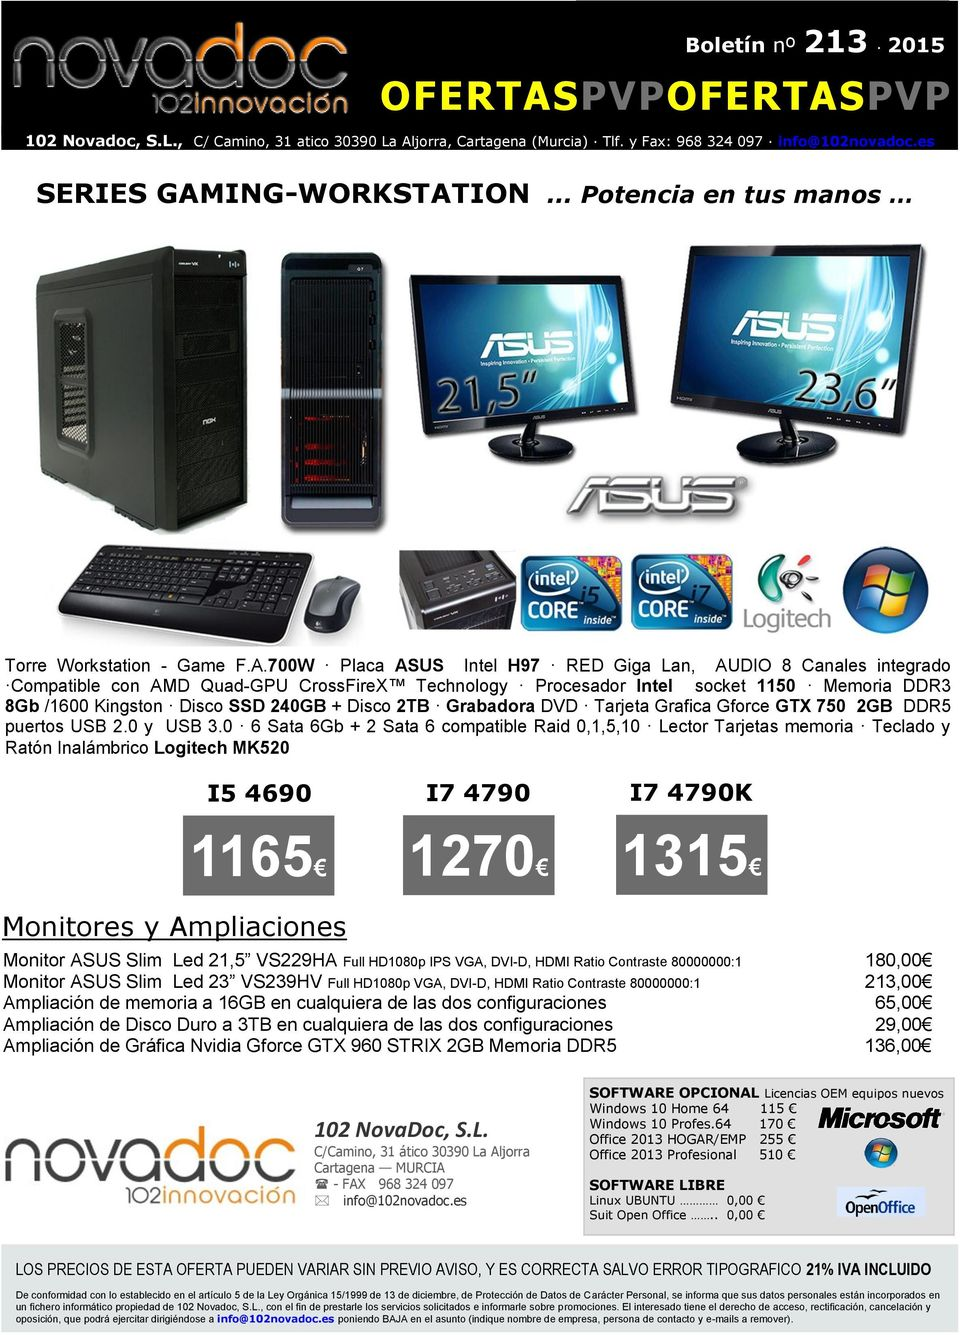 ION... Potencia en tus manos Torre Workstation - Game F.A.